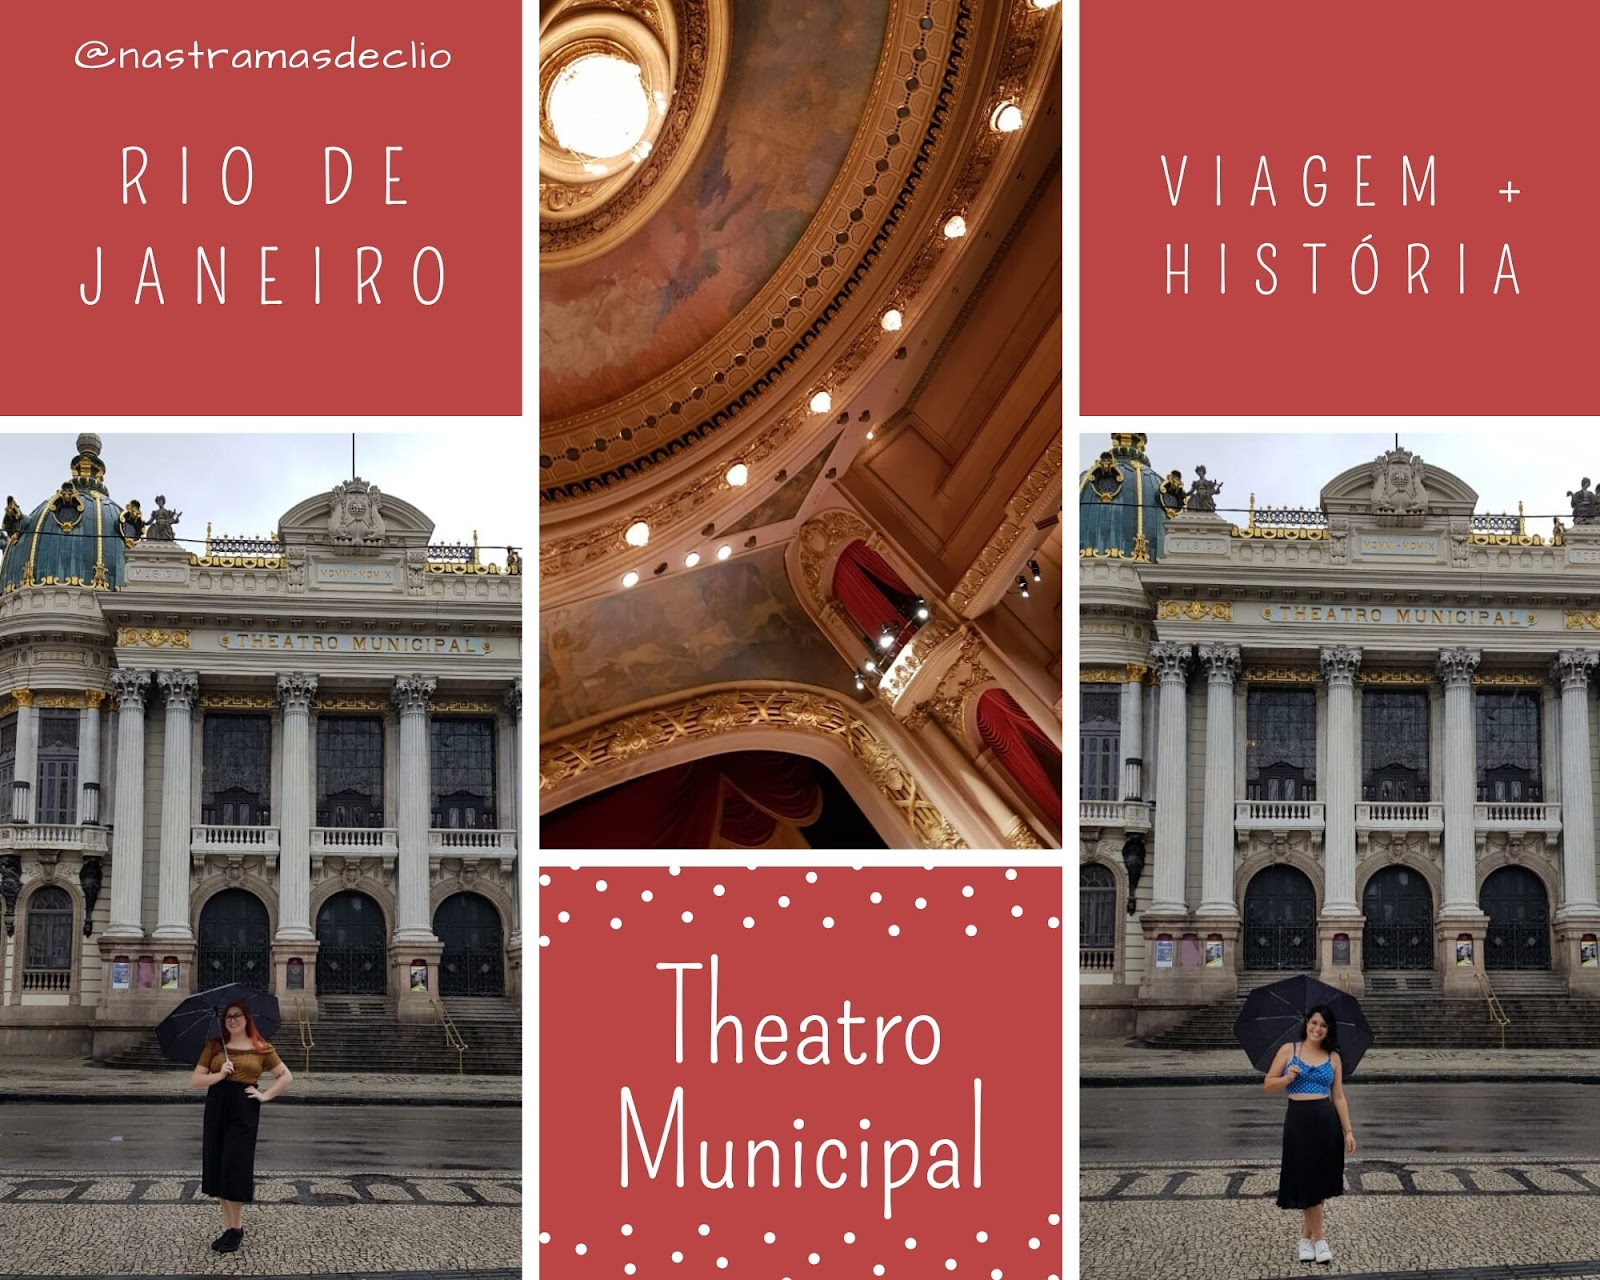 Fachada do Theatro Municipal.